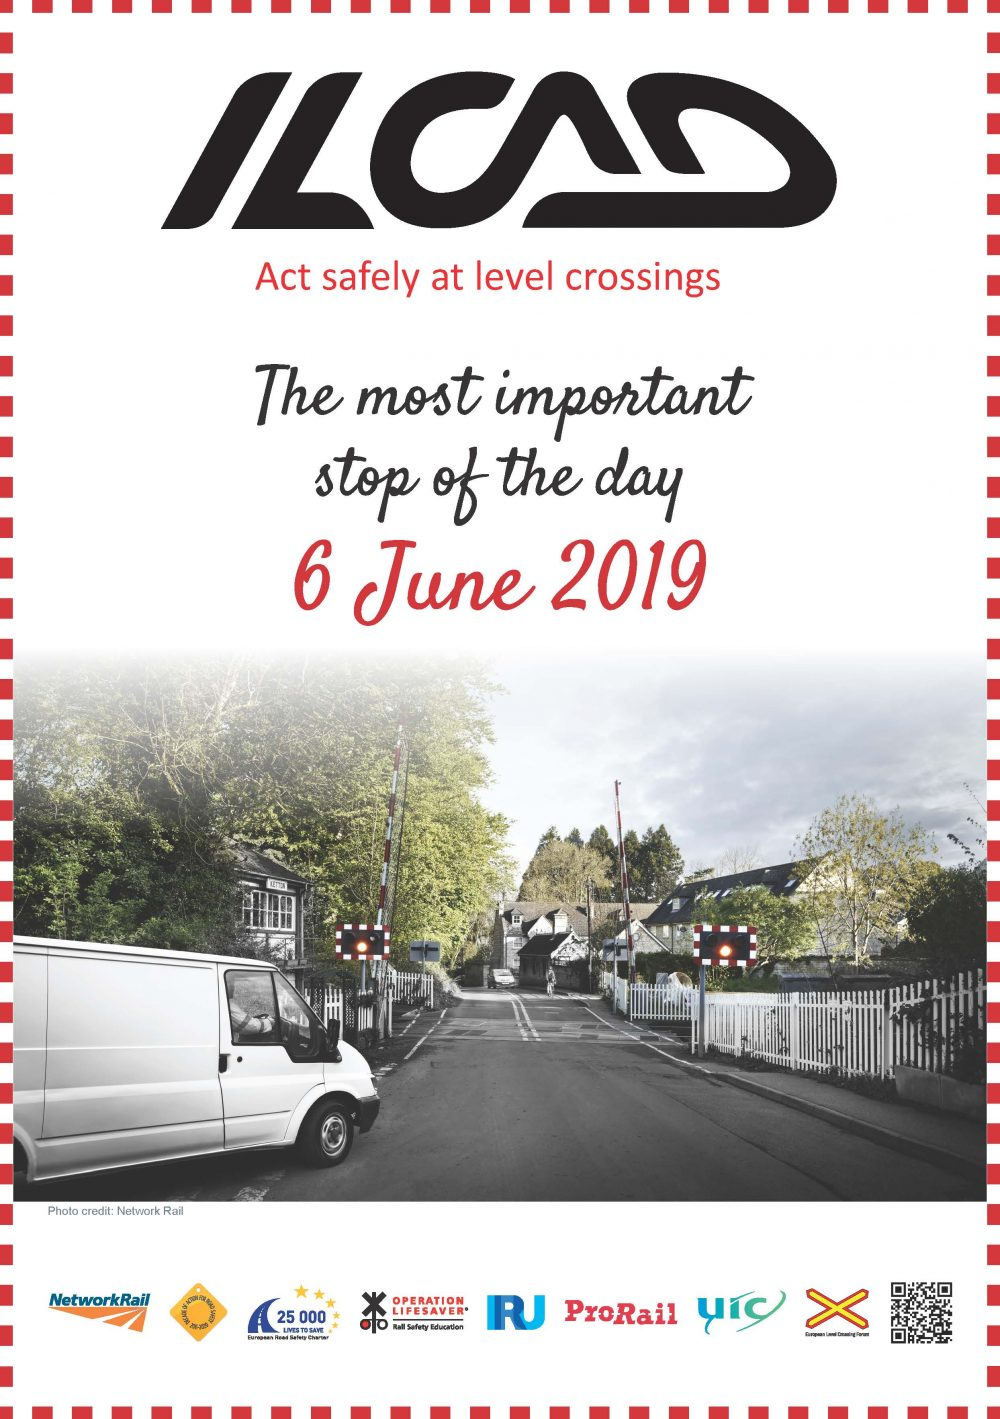 1 in 5 professional drivers will risk a level crossing according to the train timetable